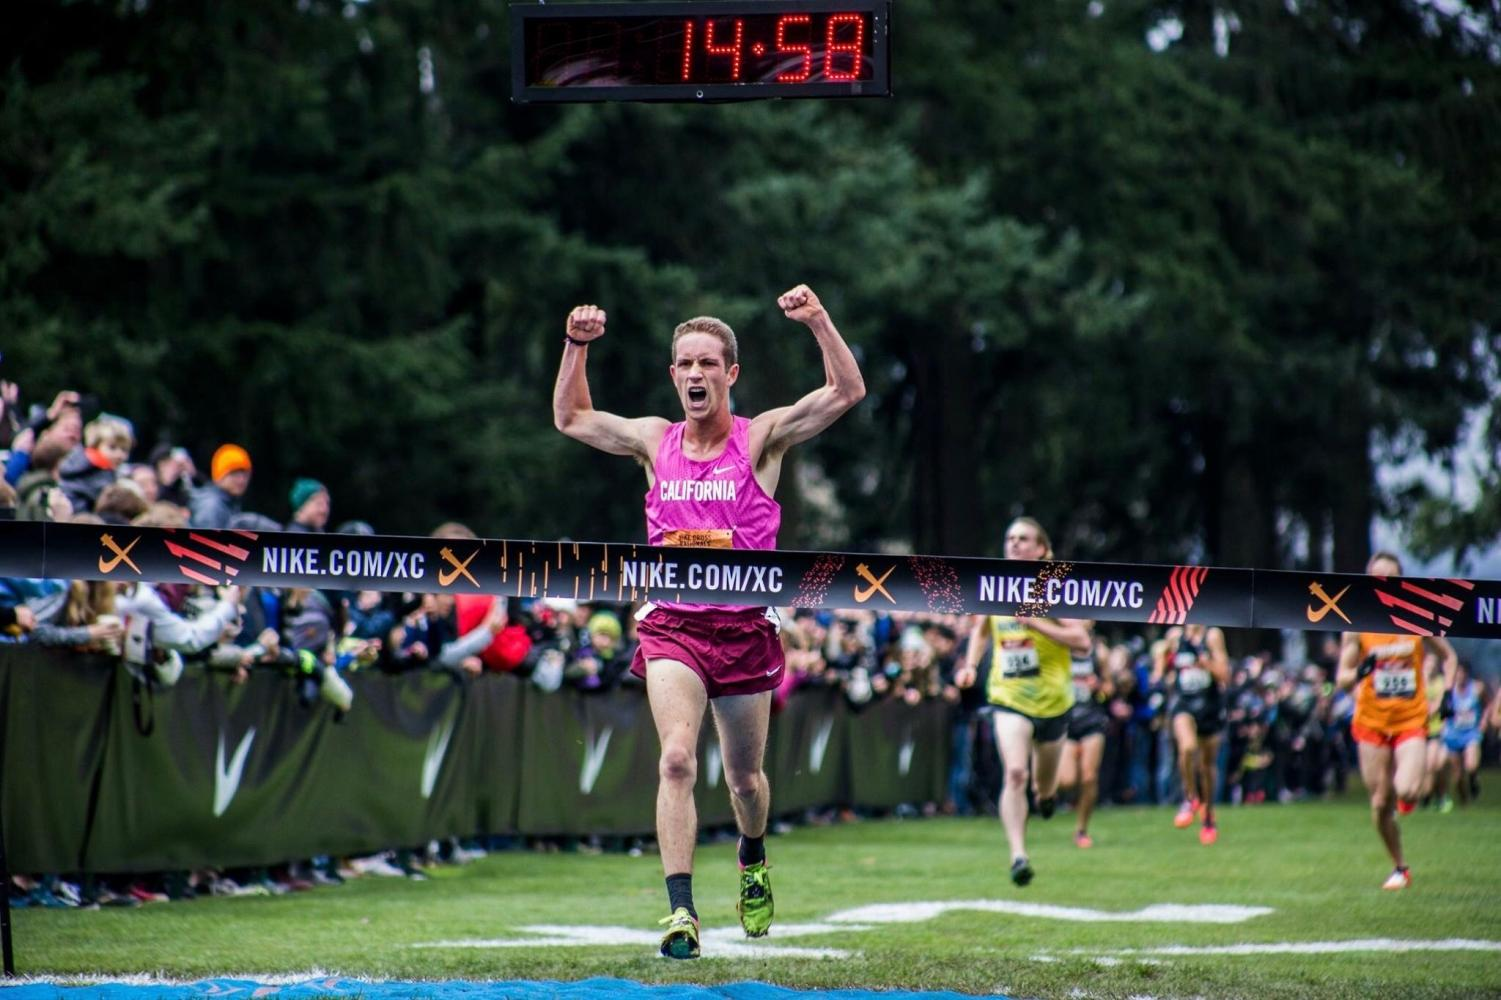 Rushing towards the finish line, Anderson wins Nike Cross Nationals.